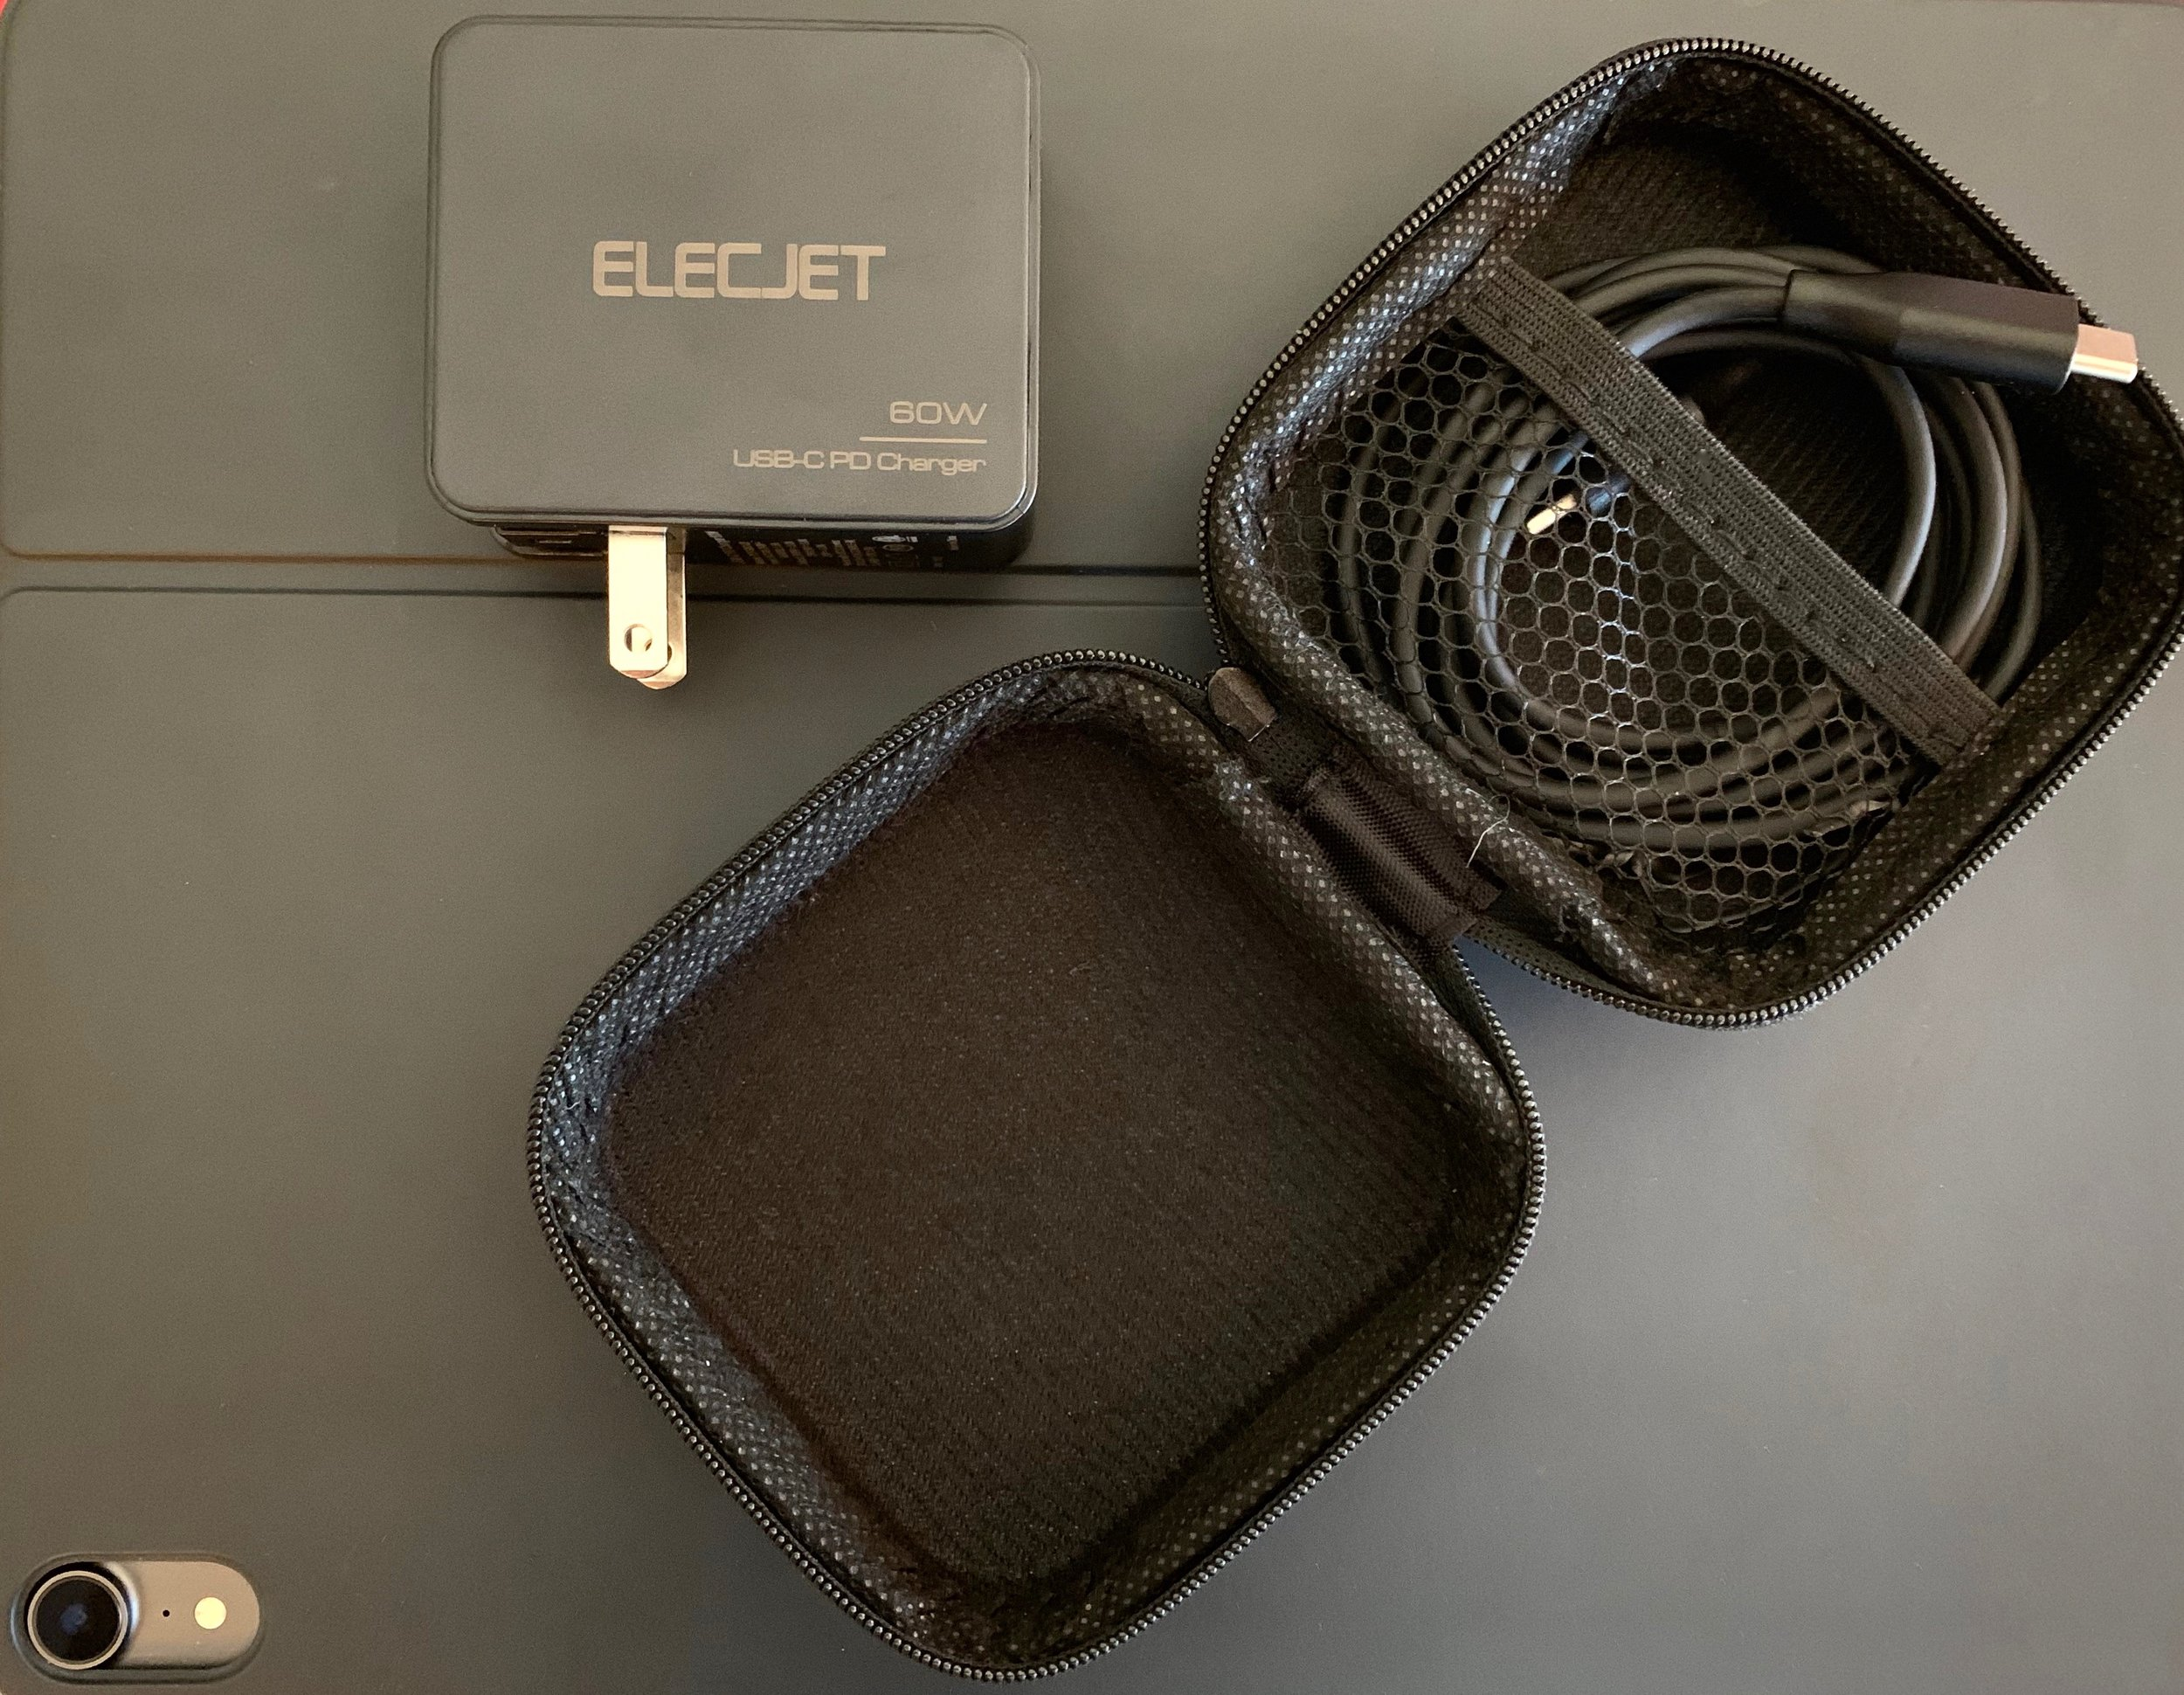 The Elecjet 60W PD USB-C Wall Charger. Photo ©2019, Steven Sande